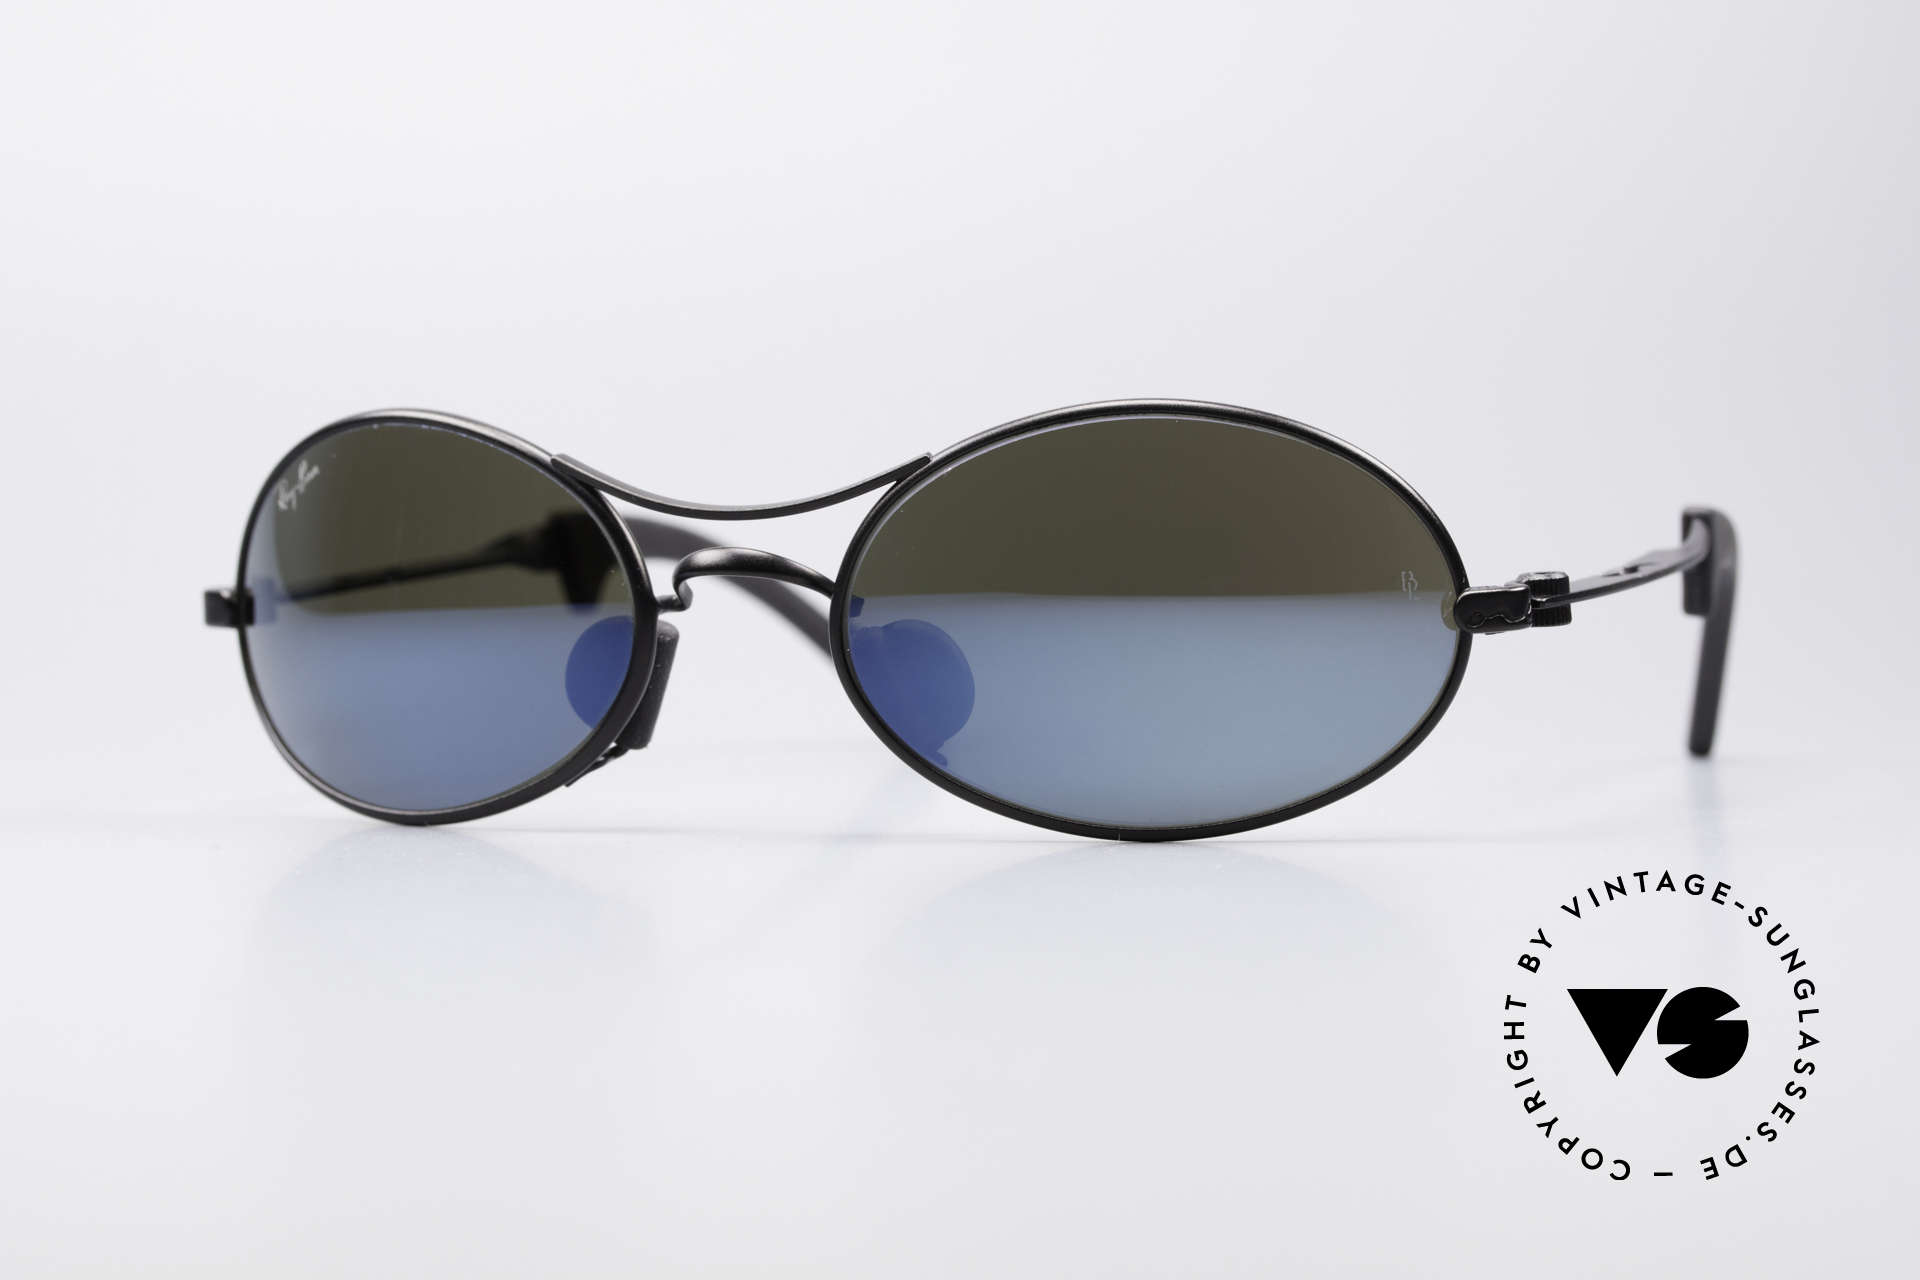 Ray Ban Orbs 9 Base Oval Blue Mirror B&L USA Shades, futuristic sports designer sunglasses by Ray Ban; B&L, Made for Men